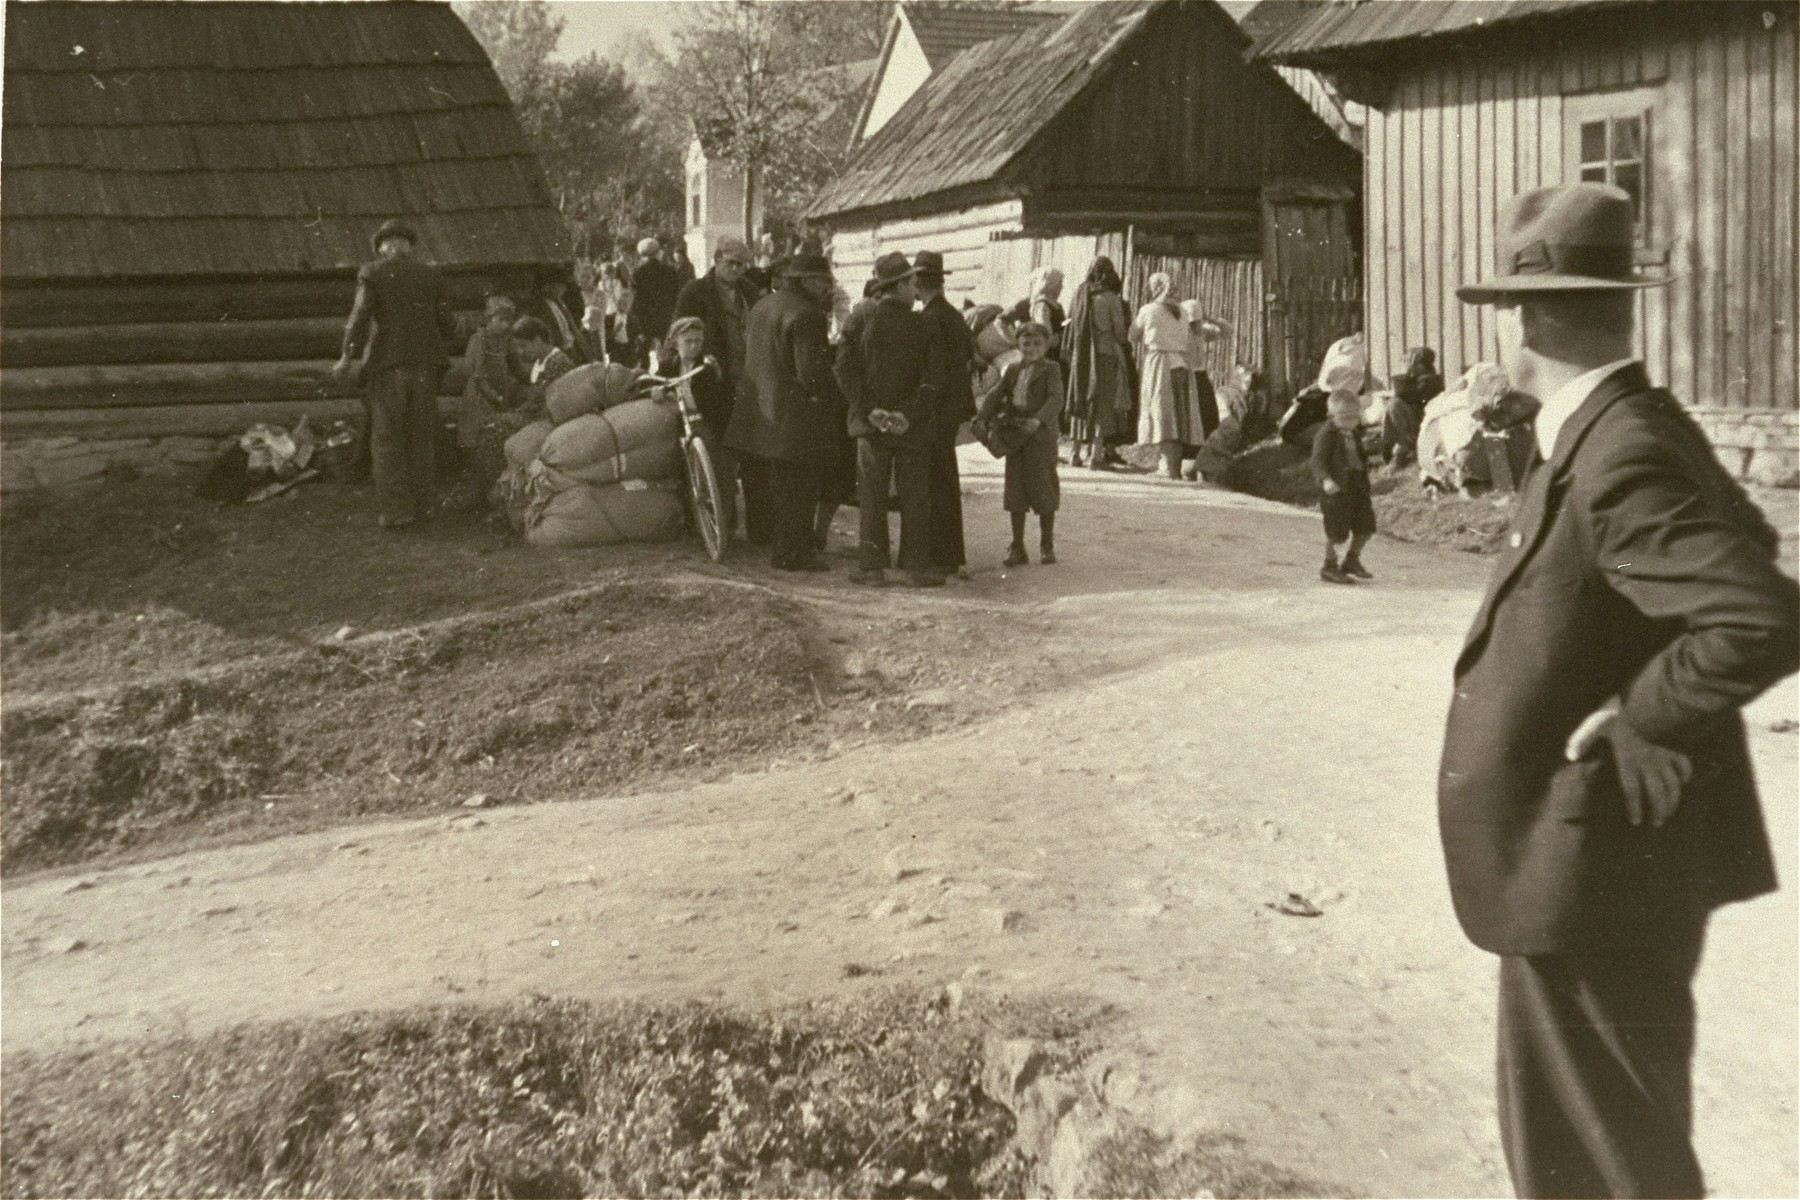 [Probably, Poles gathered outside their homes during a resettlement action.]    One of twenty-six images of Einsatzgruppen activities in Poland in 1939, found by Joseph Igra after the war, in a an album in an apartment in Sosnowiec.